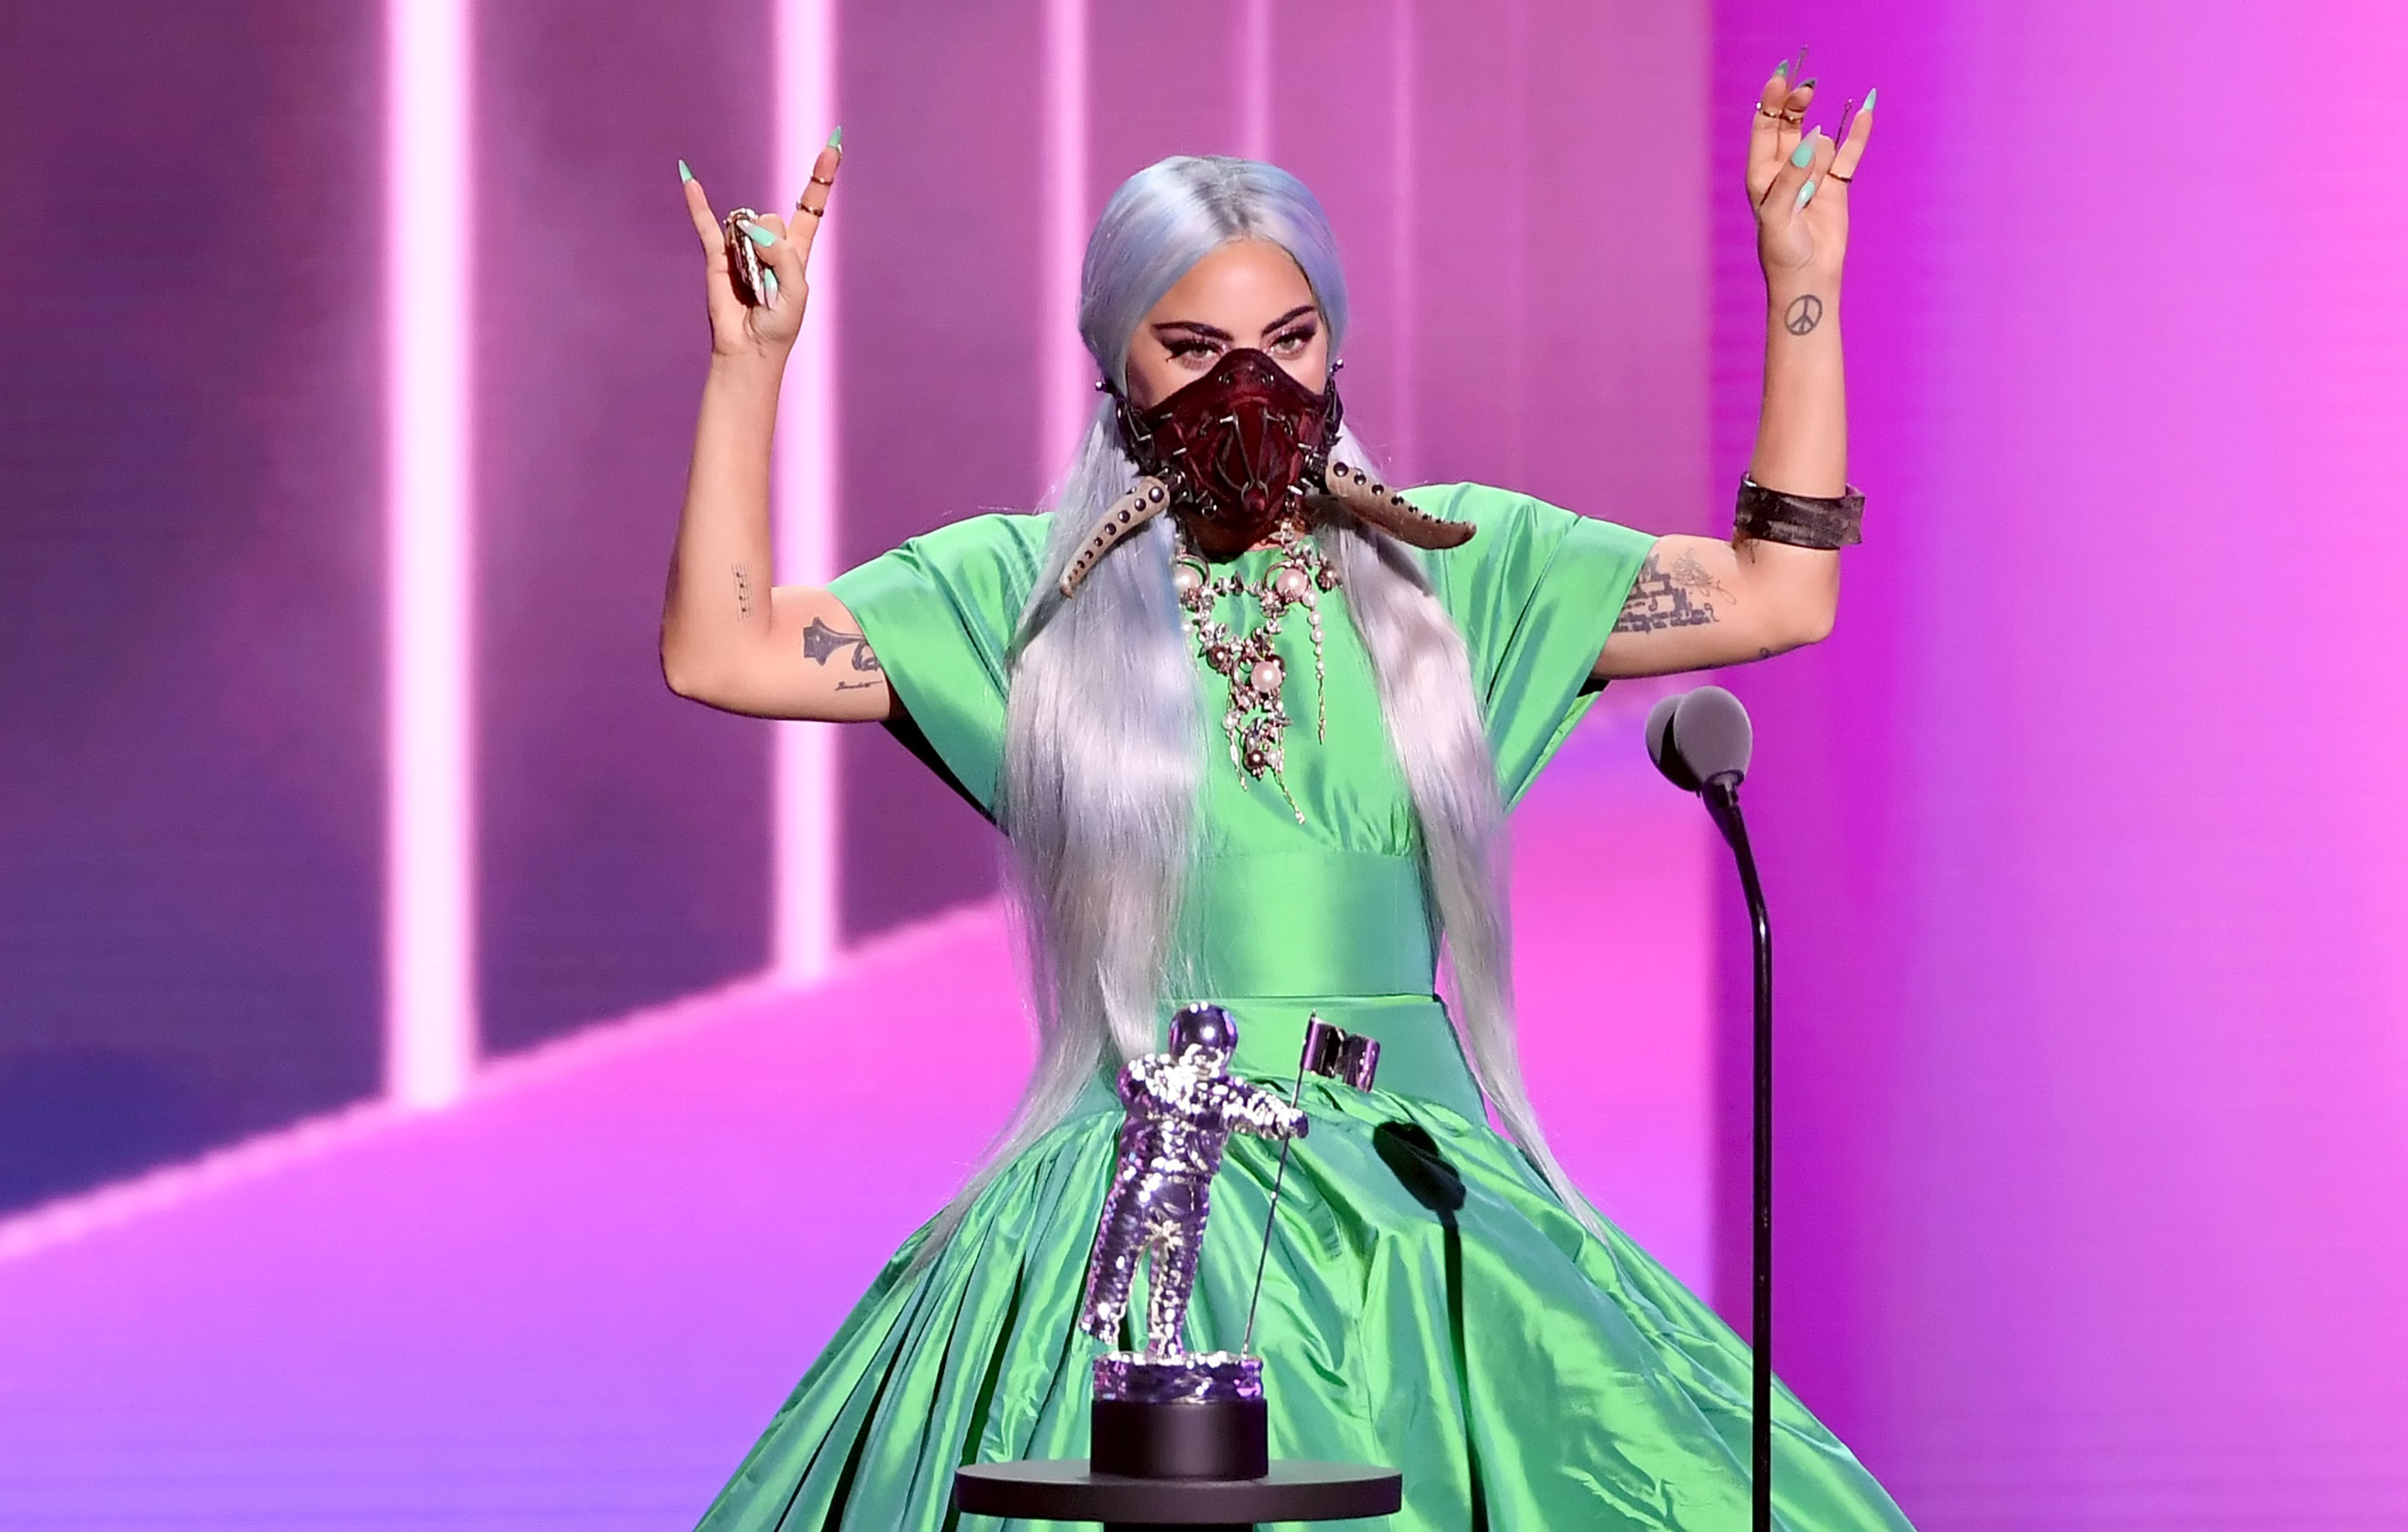 https://hips.hearstapps.com/hmg-prod.s3.amazonaws.com/images/lady-gaga-accepts-the-song-of-the-year-award-for-rain-on-me-news-photo-1598837789.jpg